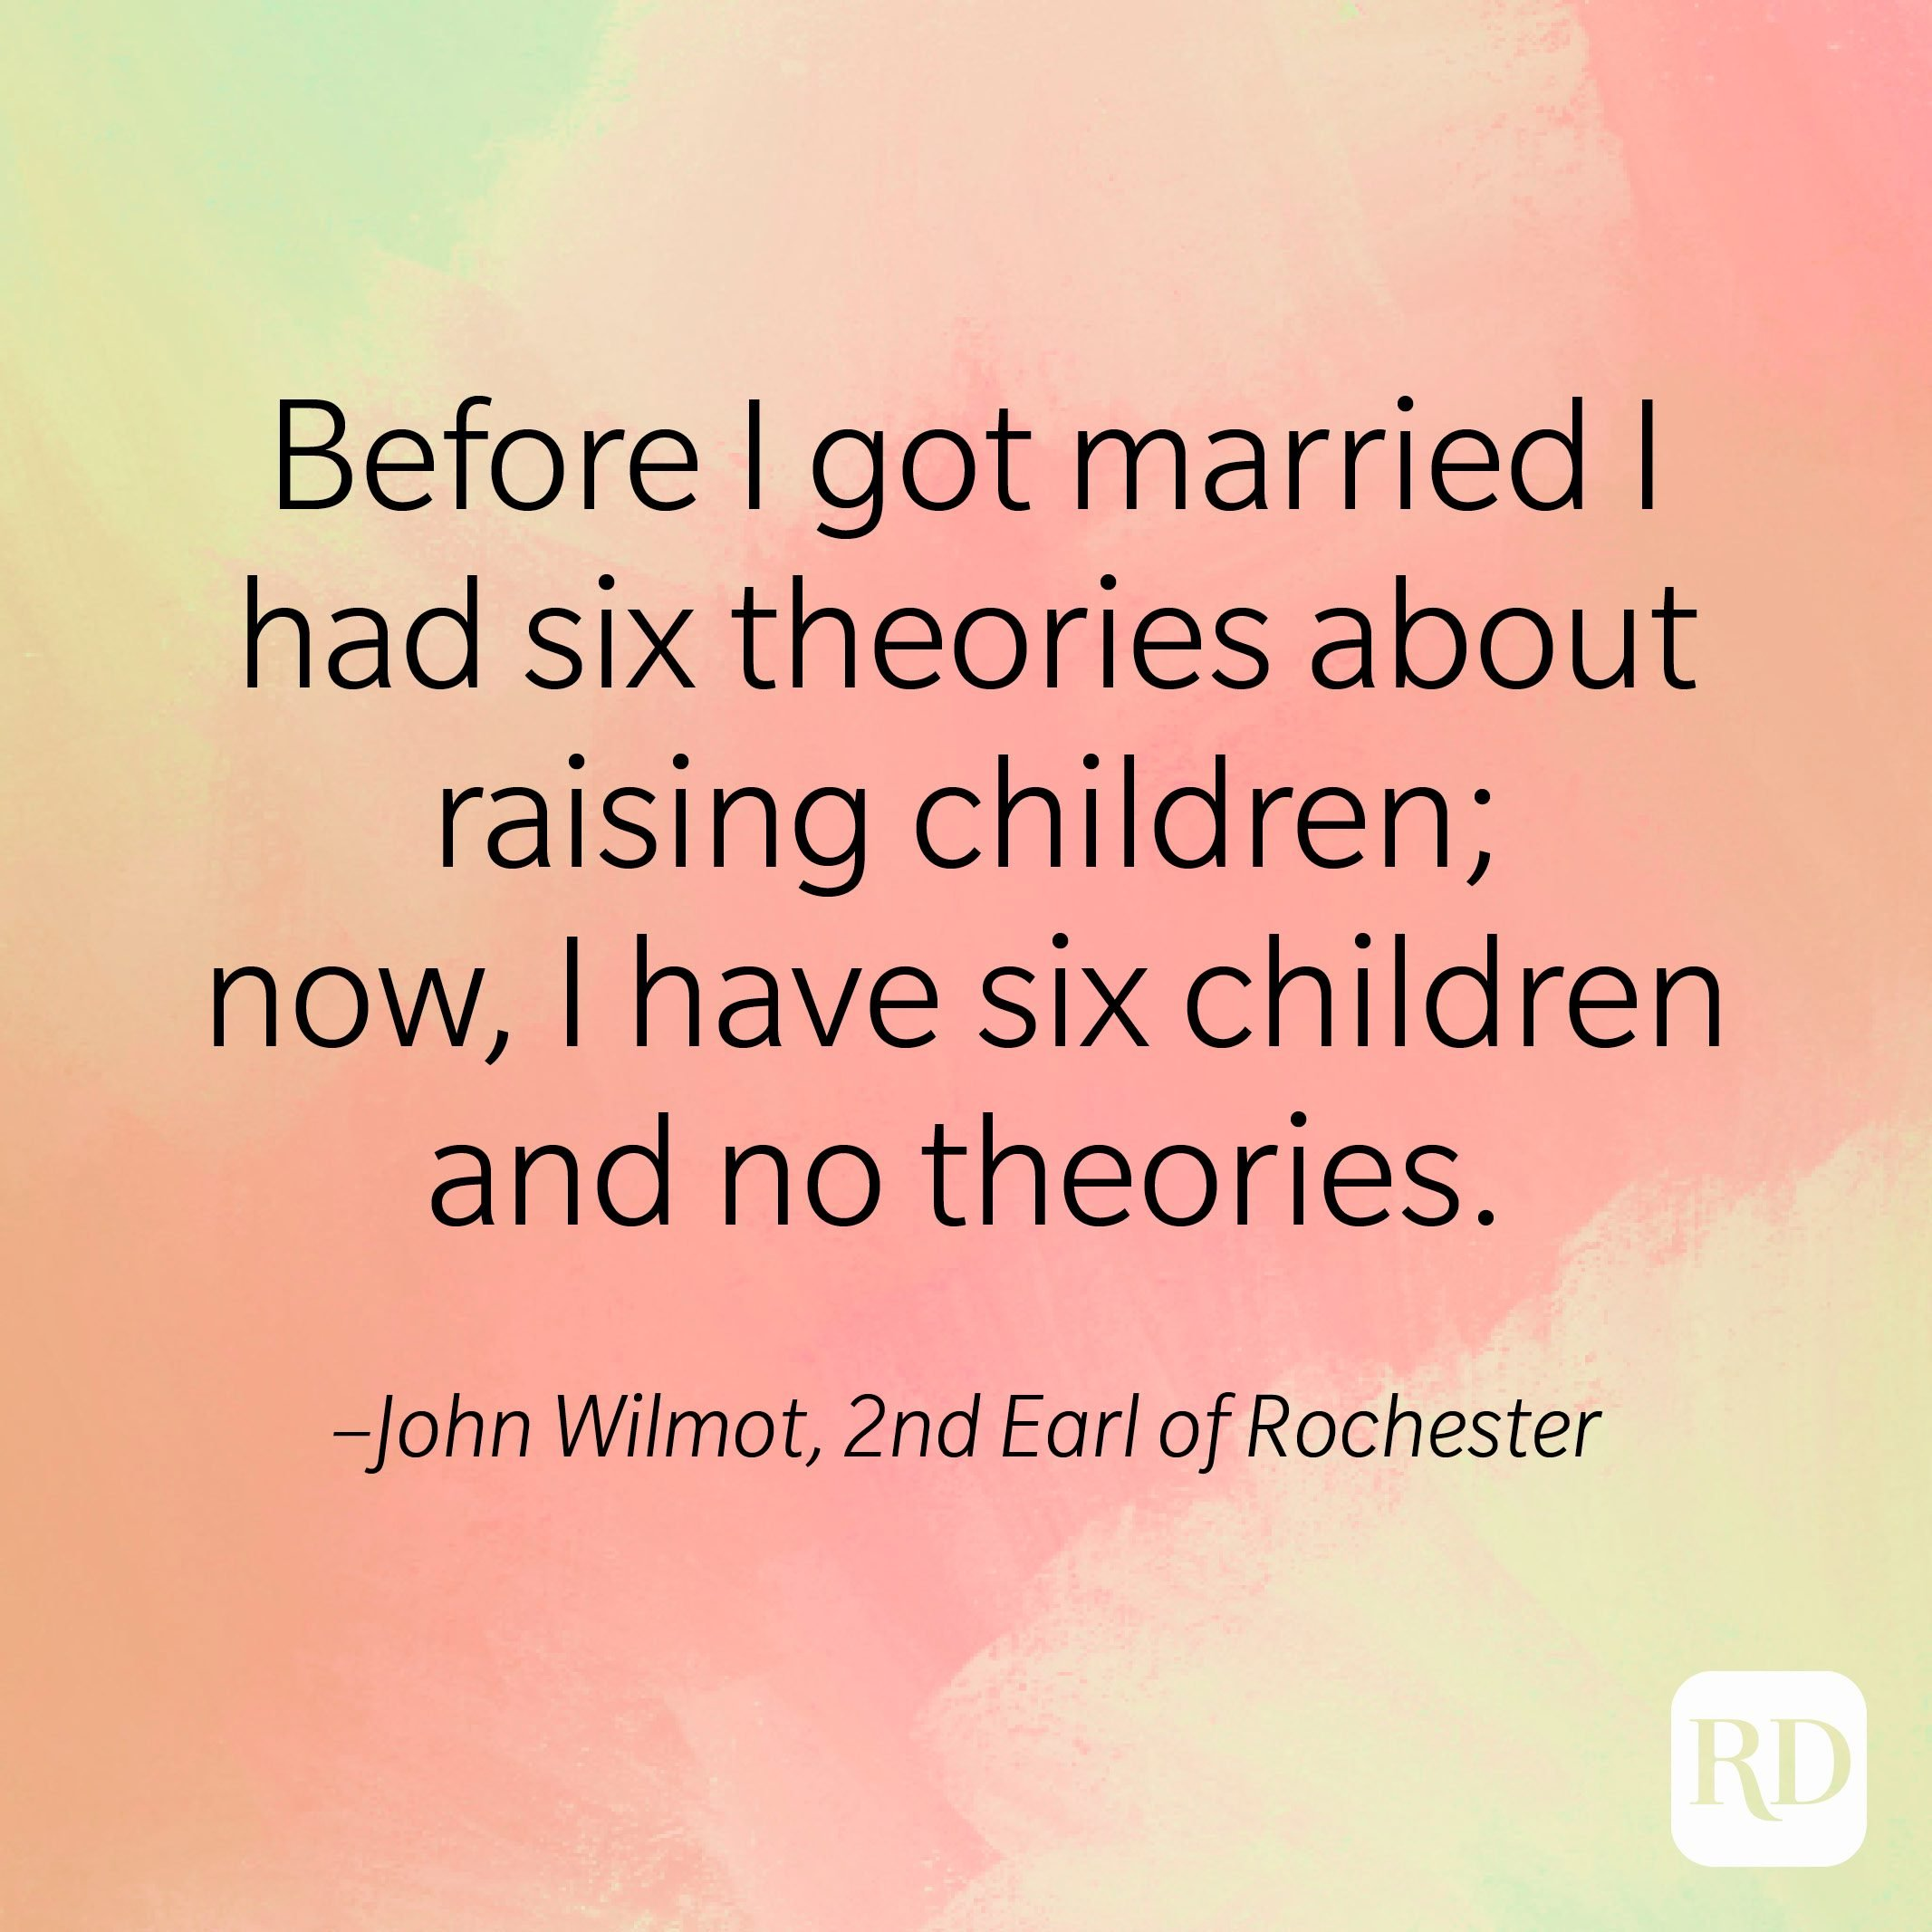 """""""Before I got married I had six theories about raising children; now, I have six children and no theories."""" –John Wilmot, 2nd Earl of Rochester"""